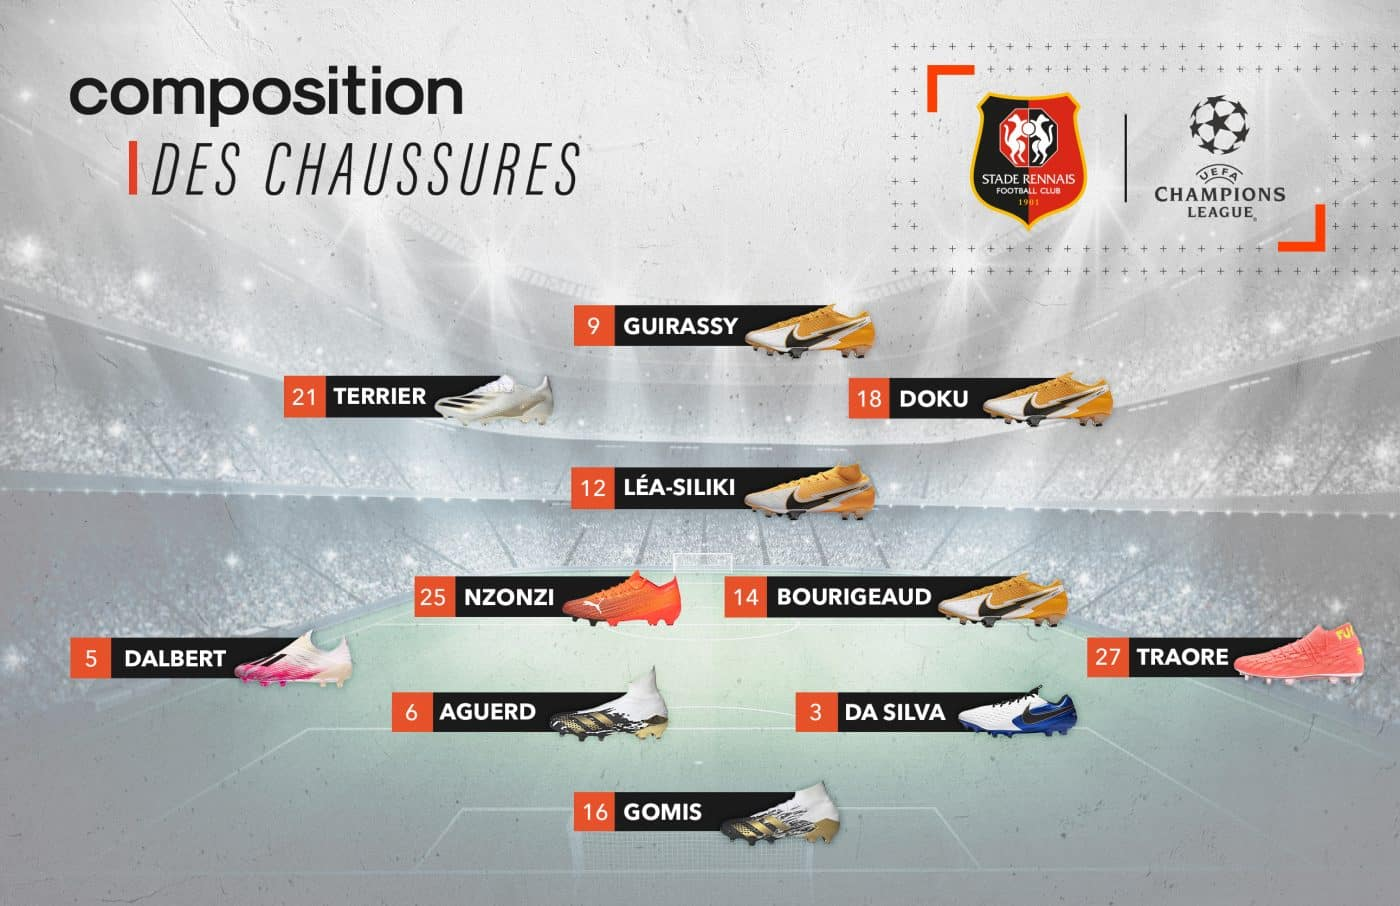 composition-chaussures-stade-rennais-rennes-chelsea-footpack-2